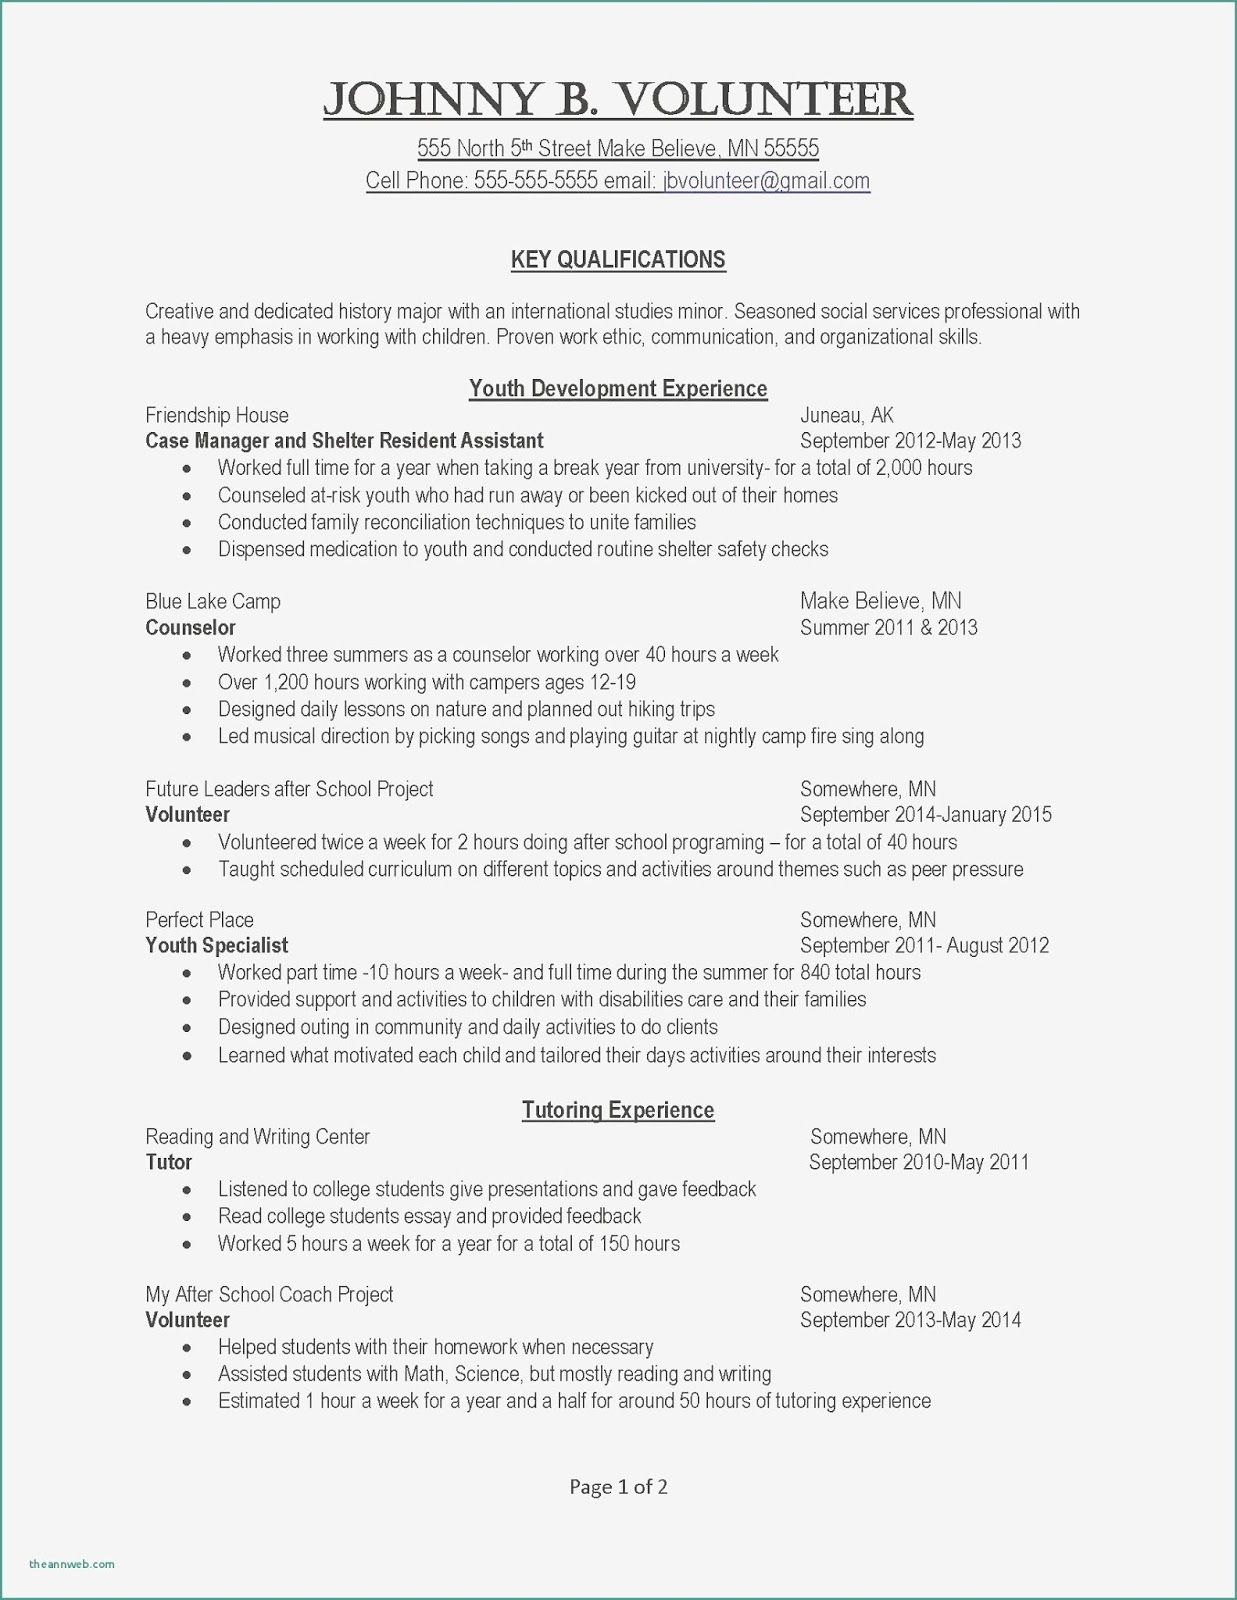 janitor resume objective job for examples teacher skills janitorial position graduate Resume Resume Objective For Janitorial Position